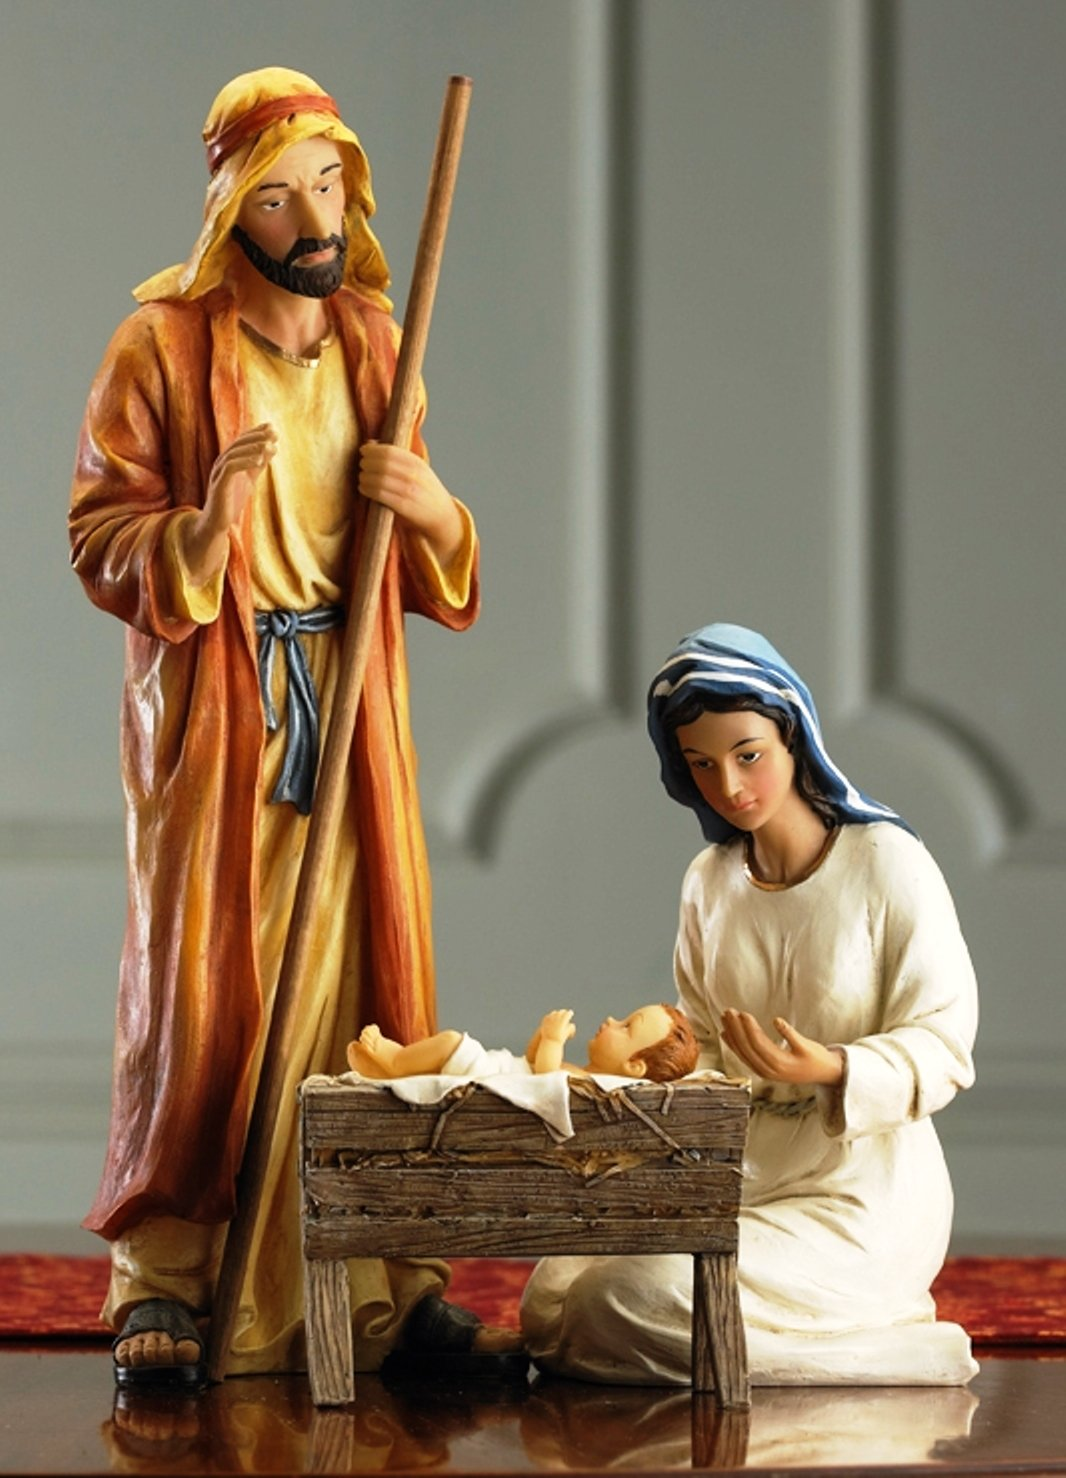 Christmas Nativity Set - Full 10 inch Real Life Nativity Set by Three Kings Gifts (Image #1)